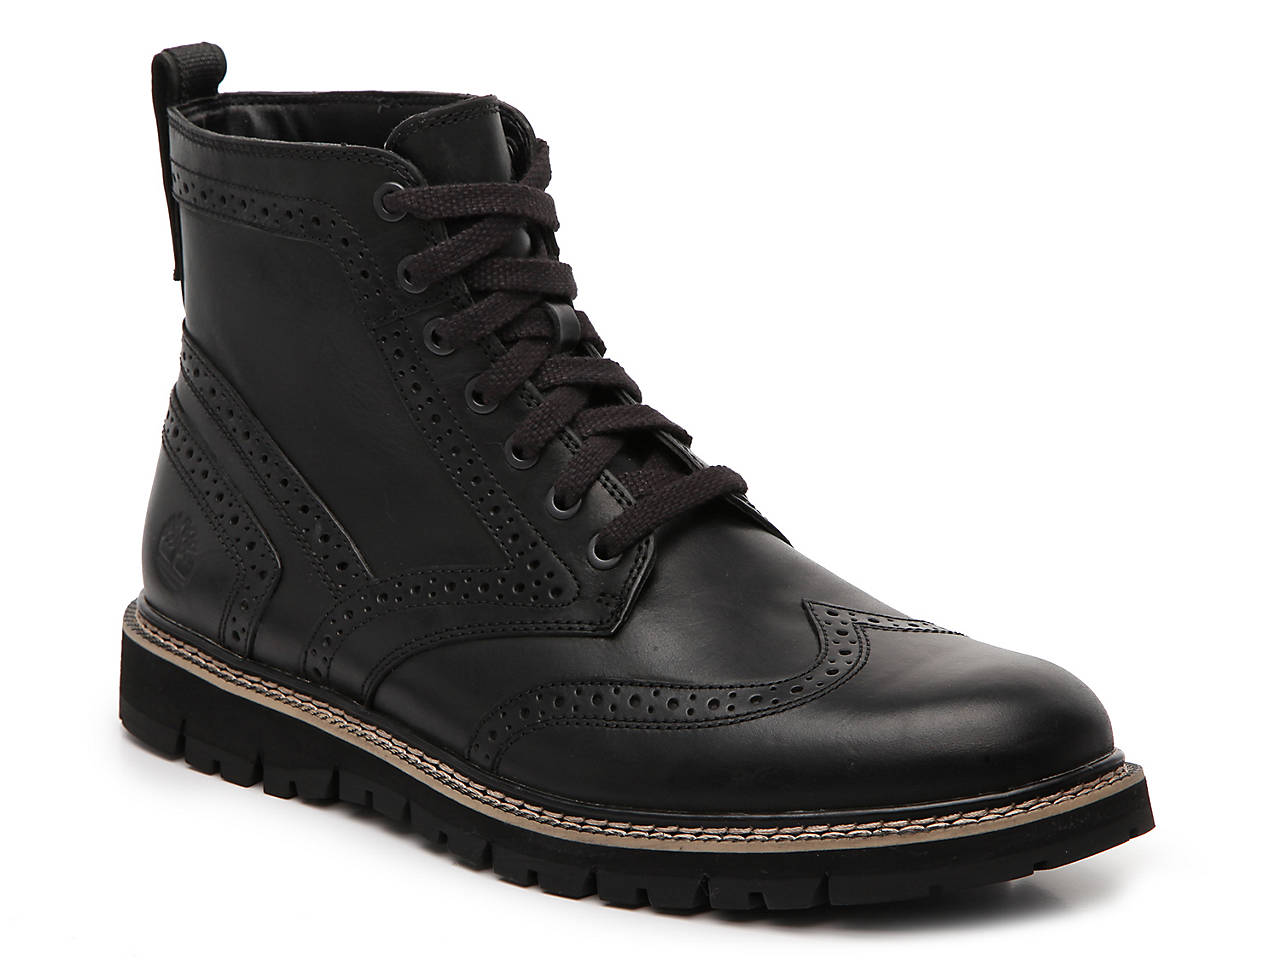 98b8029fa539 Timberland Britton Hill Wingtip Boot Men s Shoes